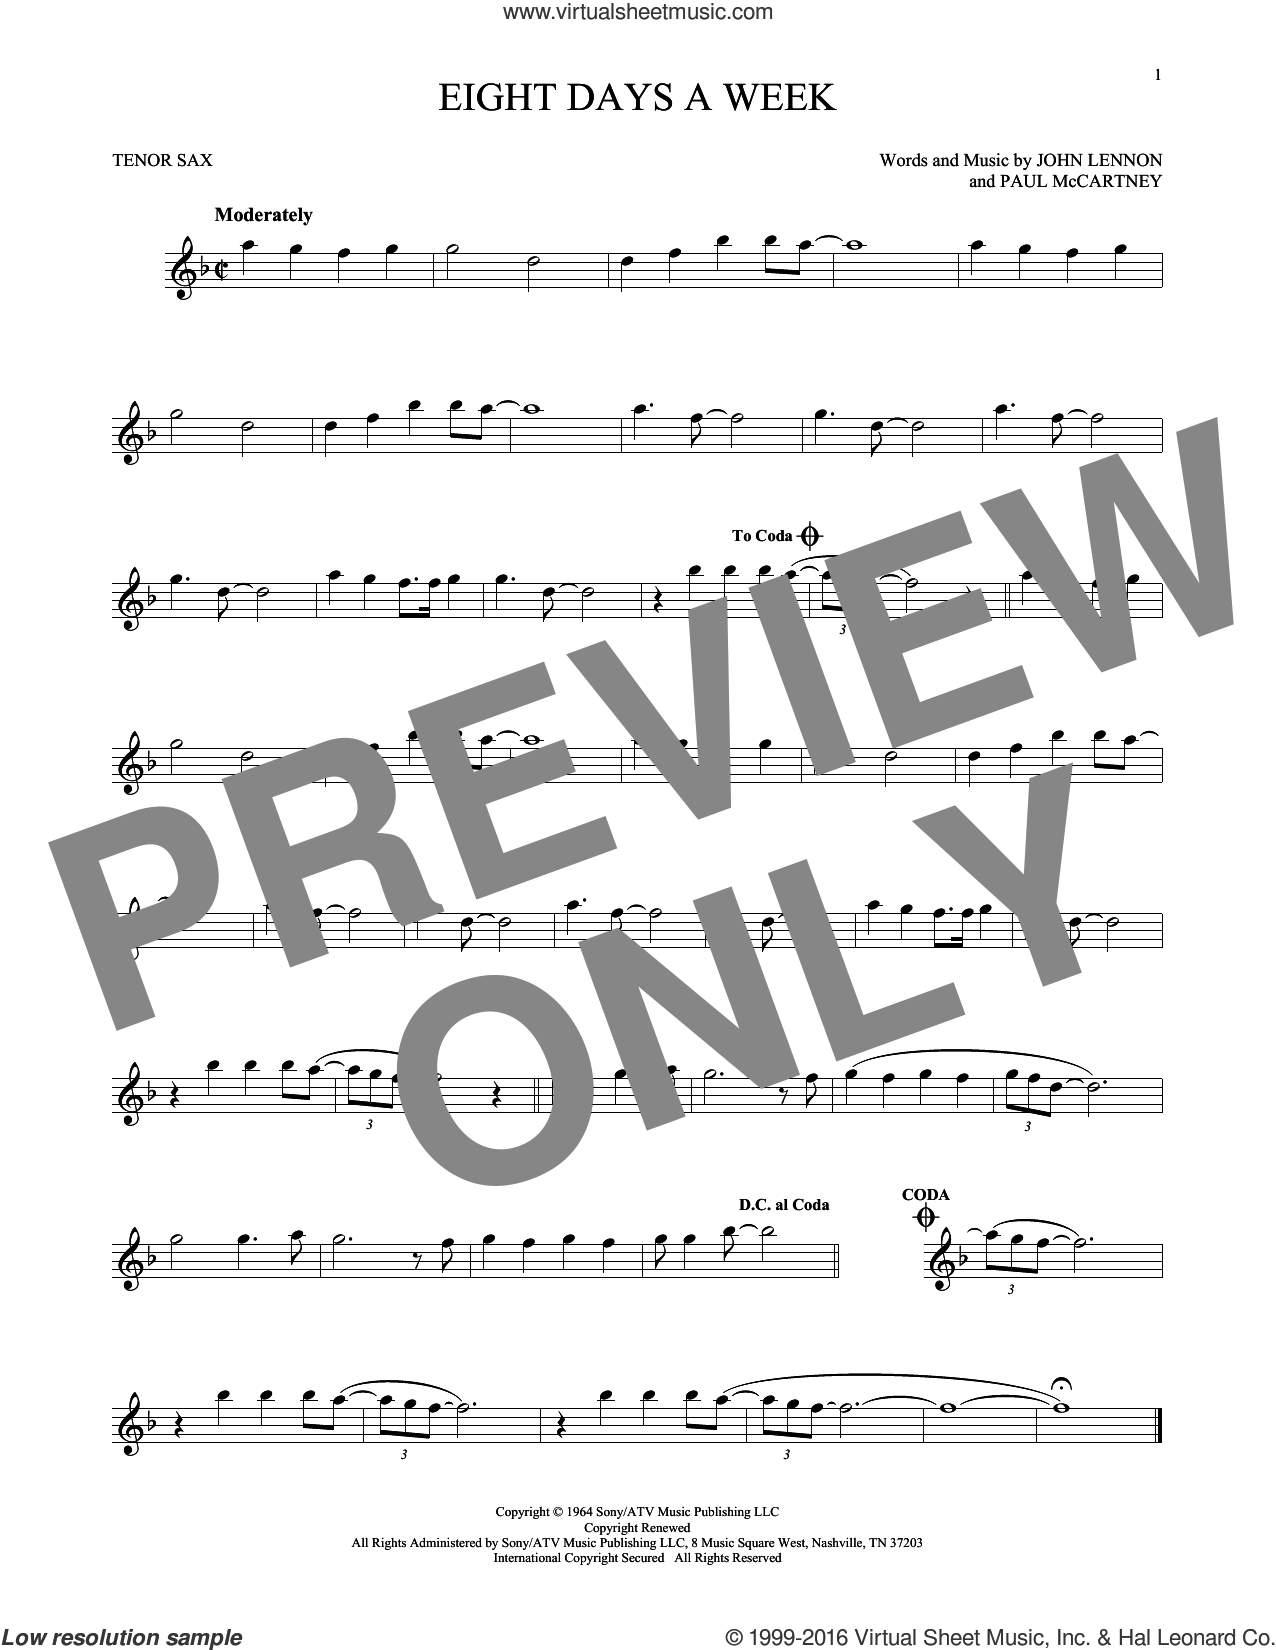 Eight Days A Week sheet music for tenor saxophone solo by The Beatles, John Lennon and Paul McCartney, intermediate skill level